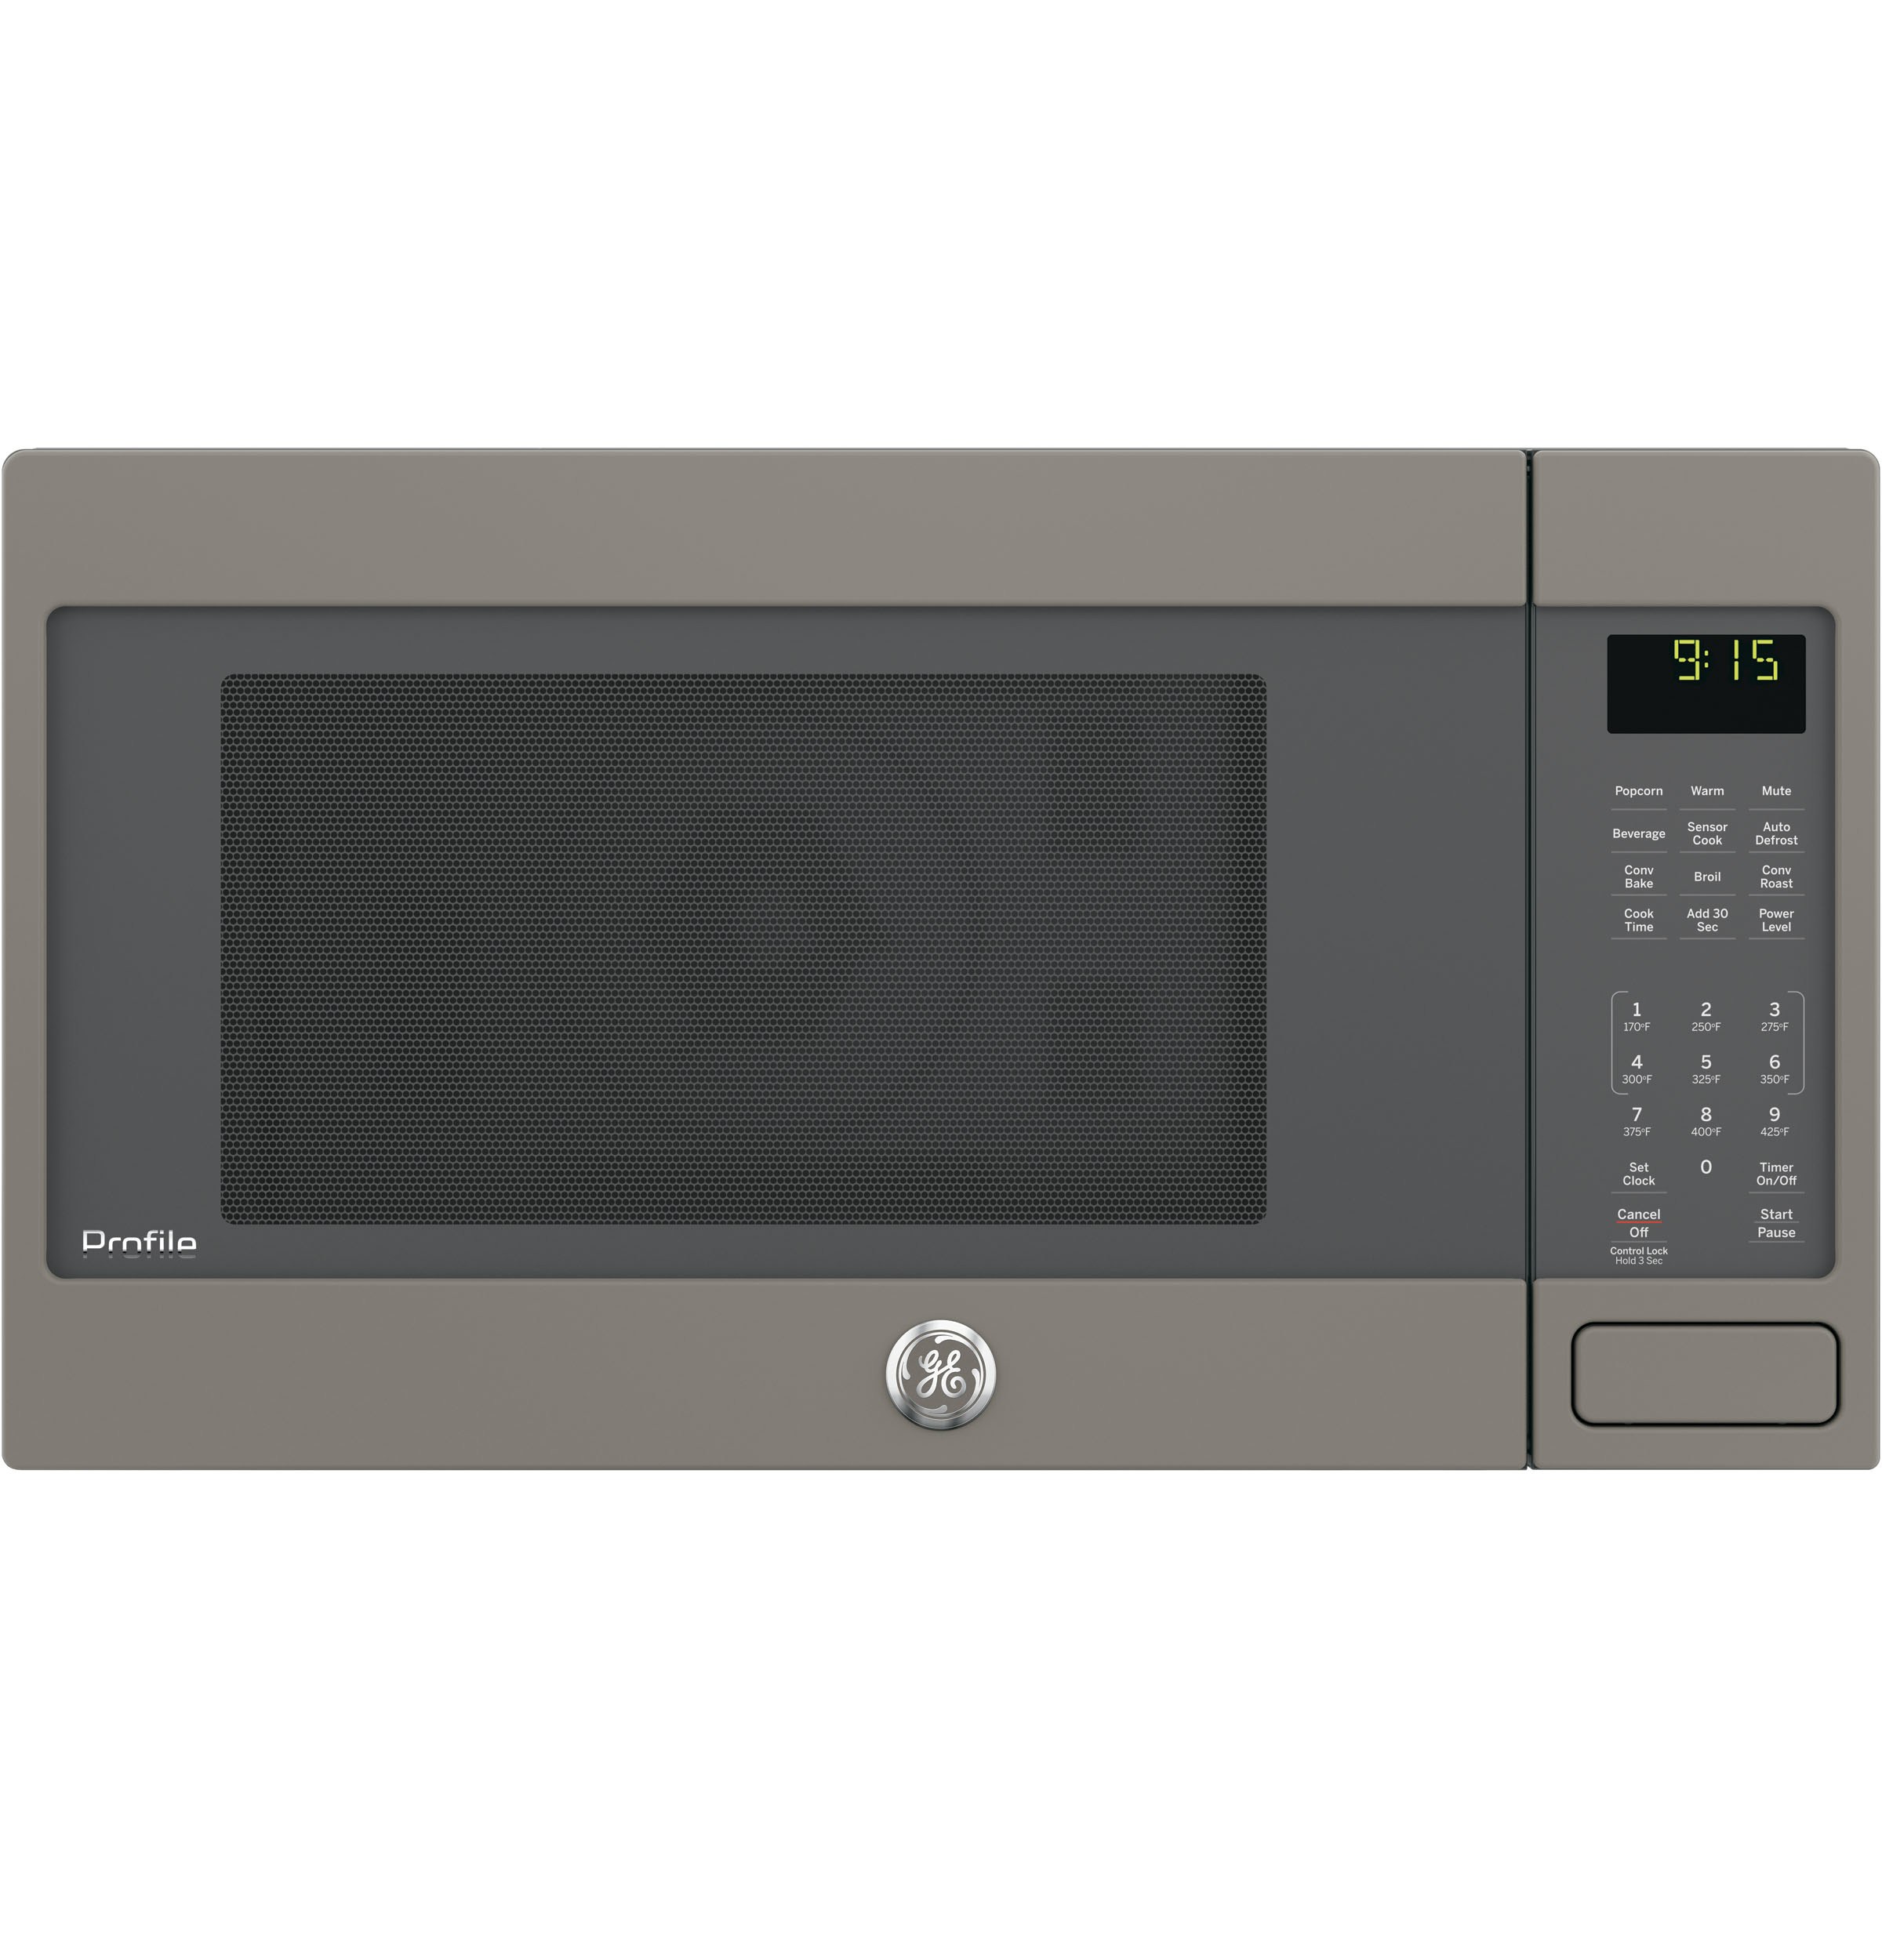 GE Profile GE Profile™ Series 1.5 Cu. Ft. Countertop Convection/Microwave Oven